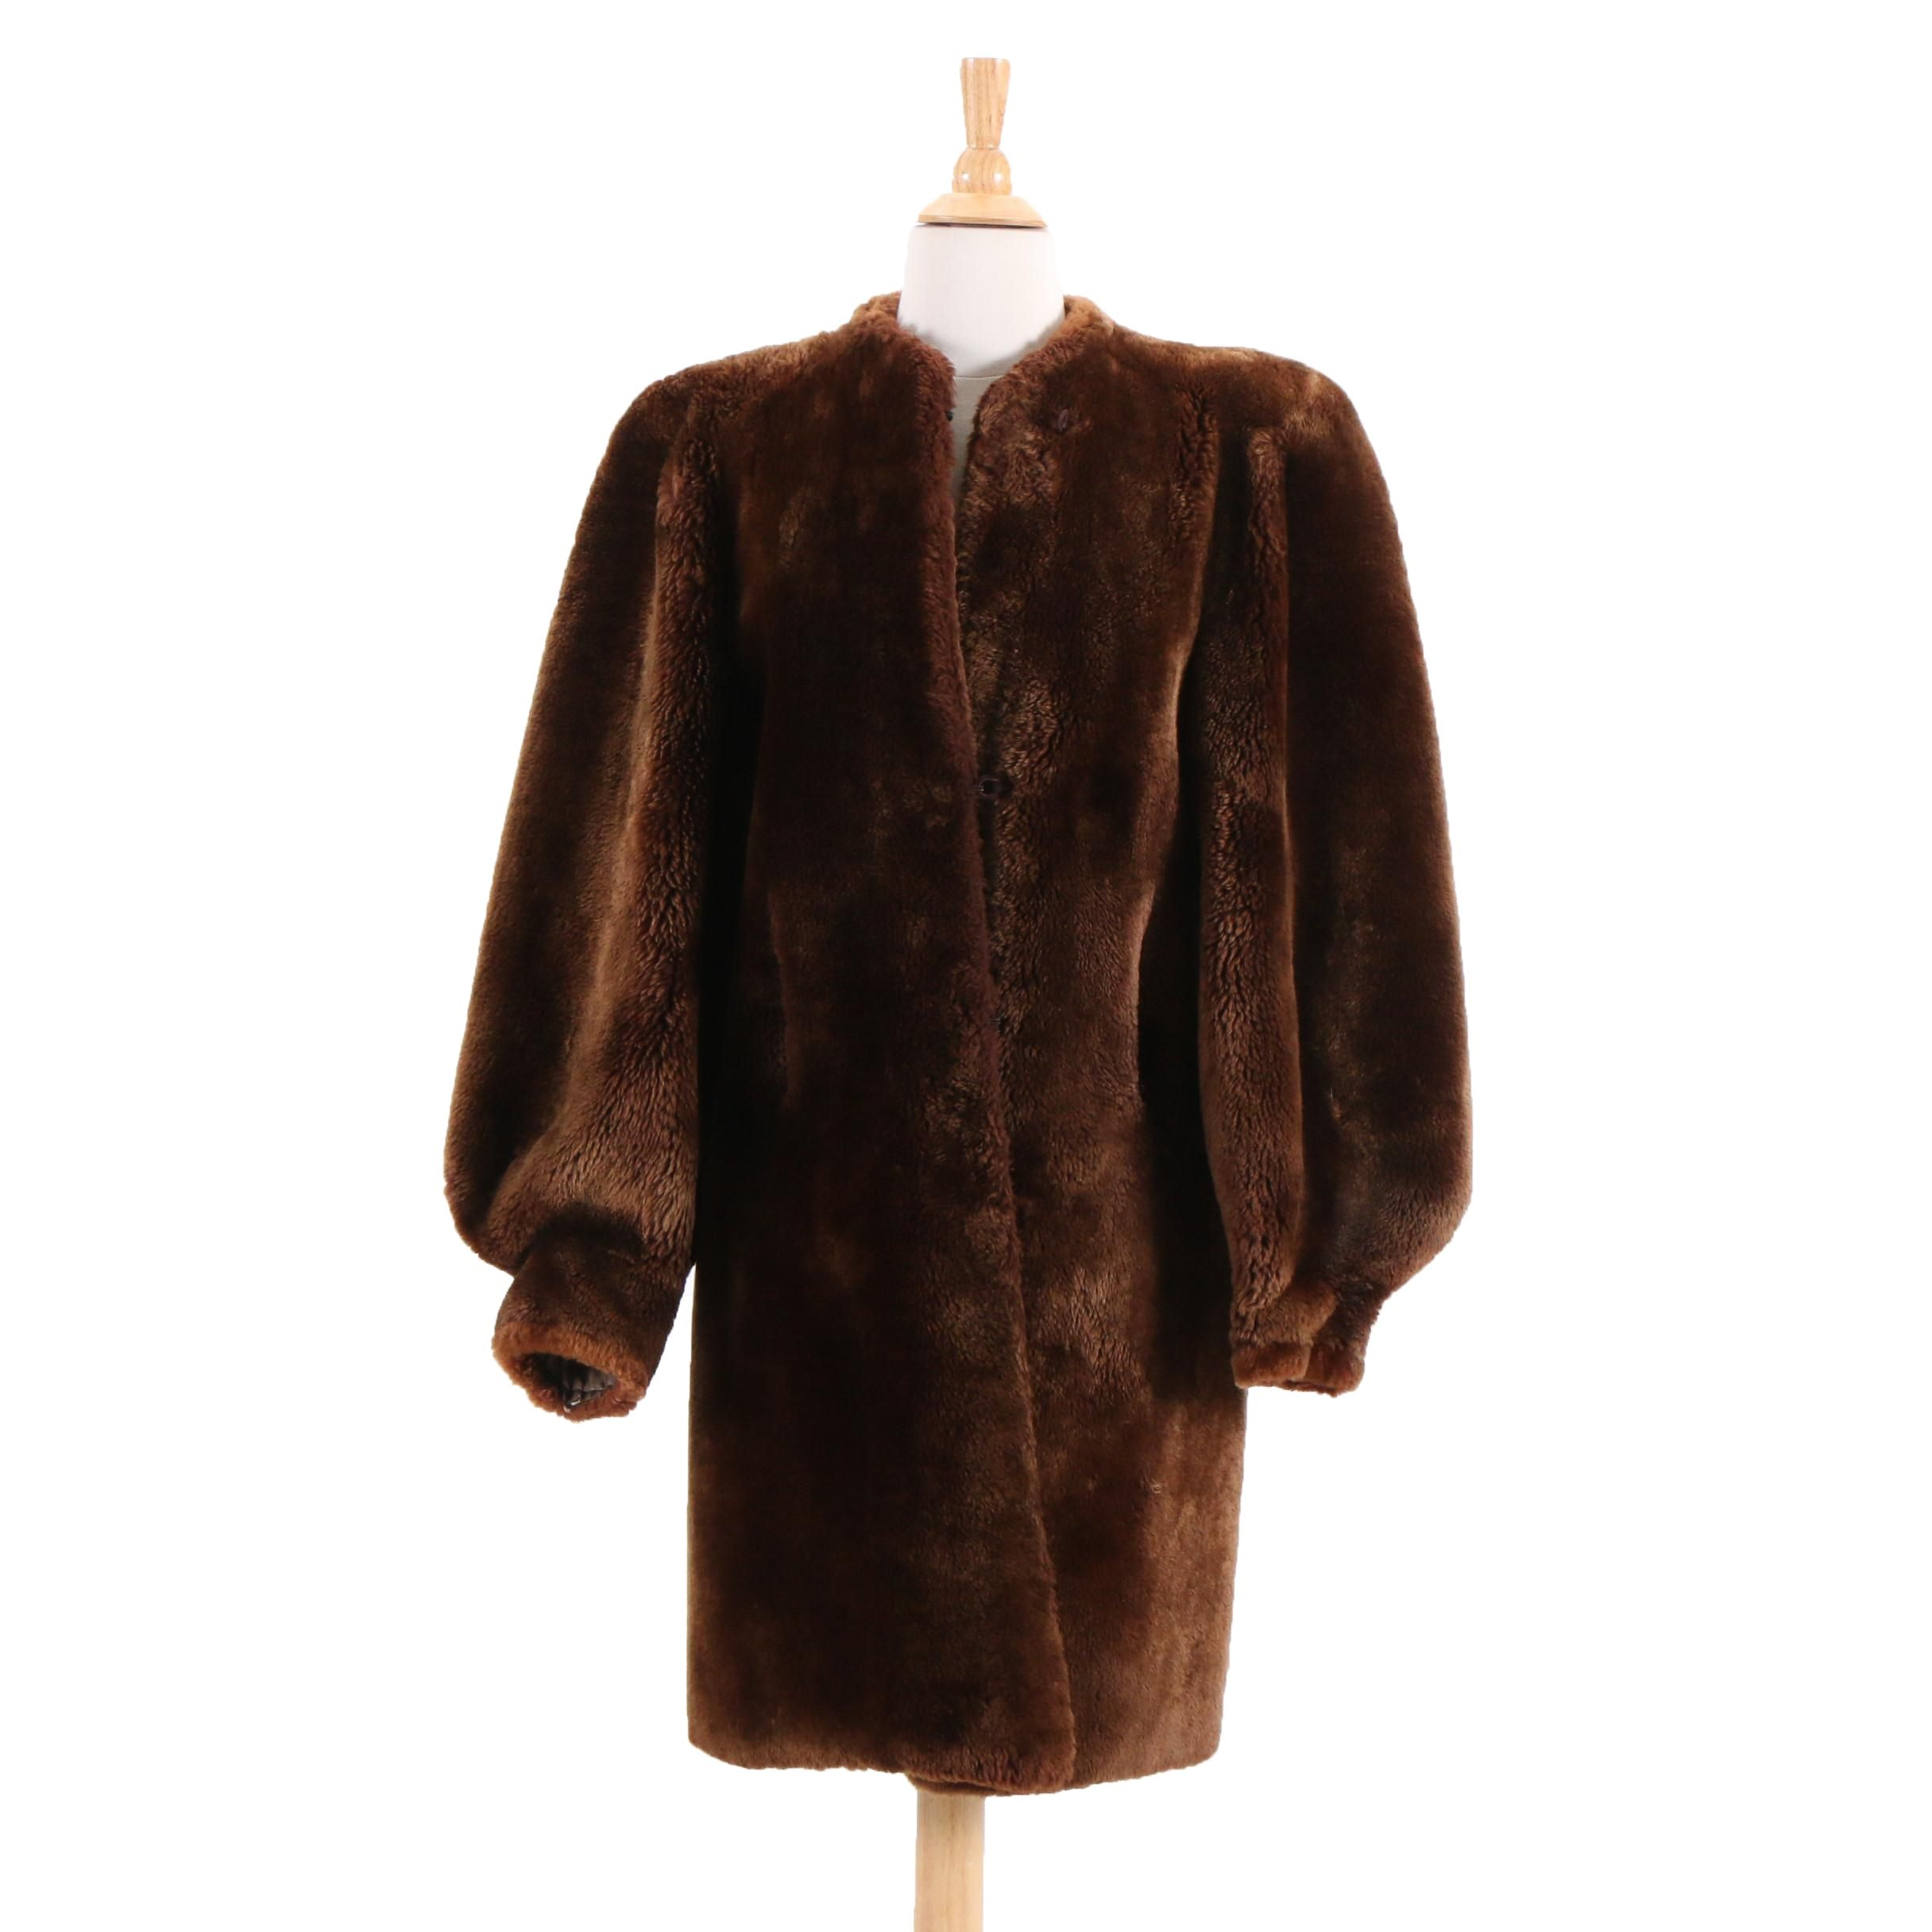 Stanley Rich Mouton Fur Coat, circa 1940